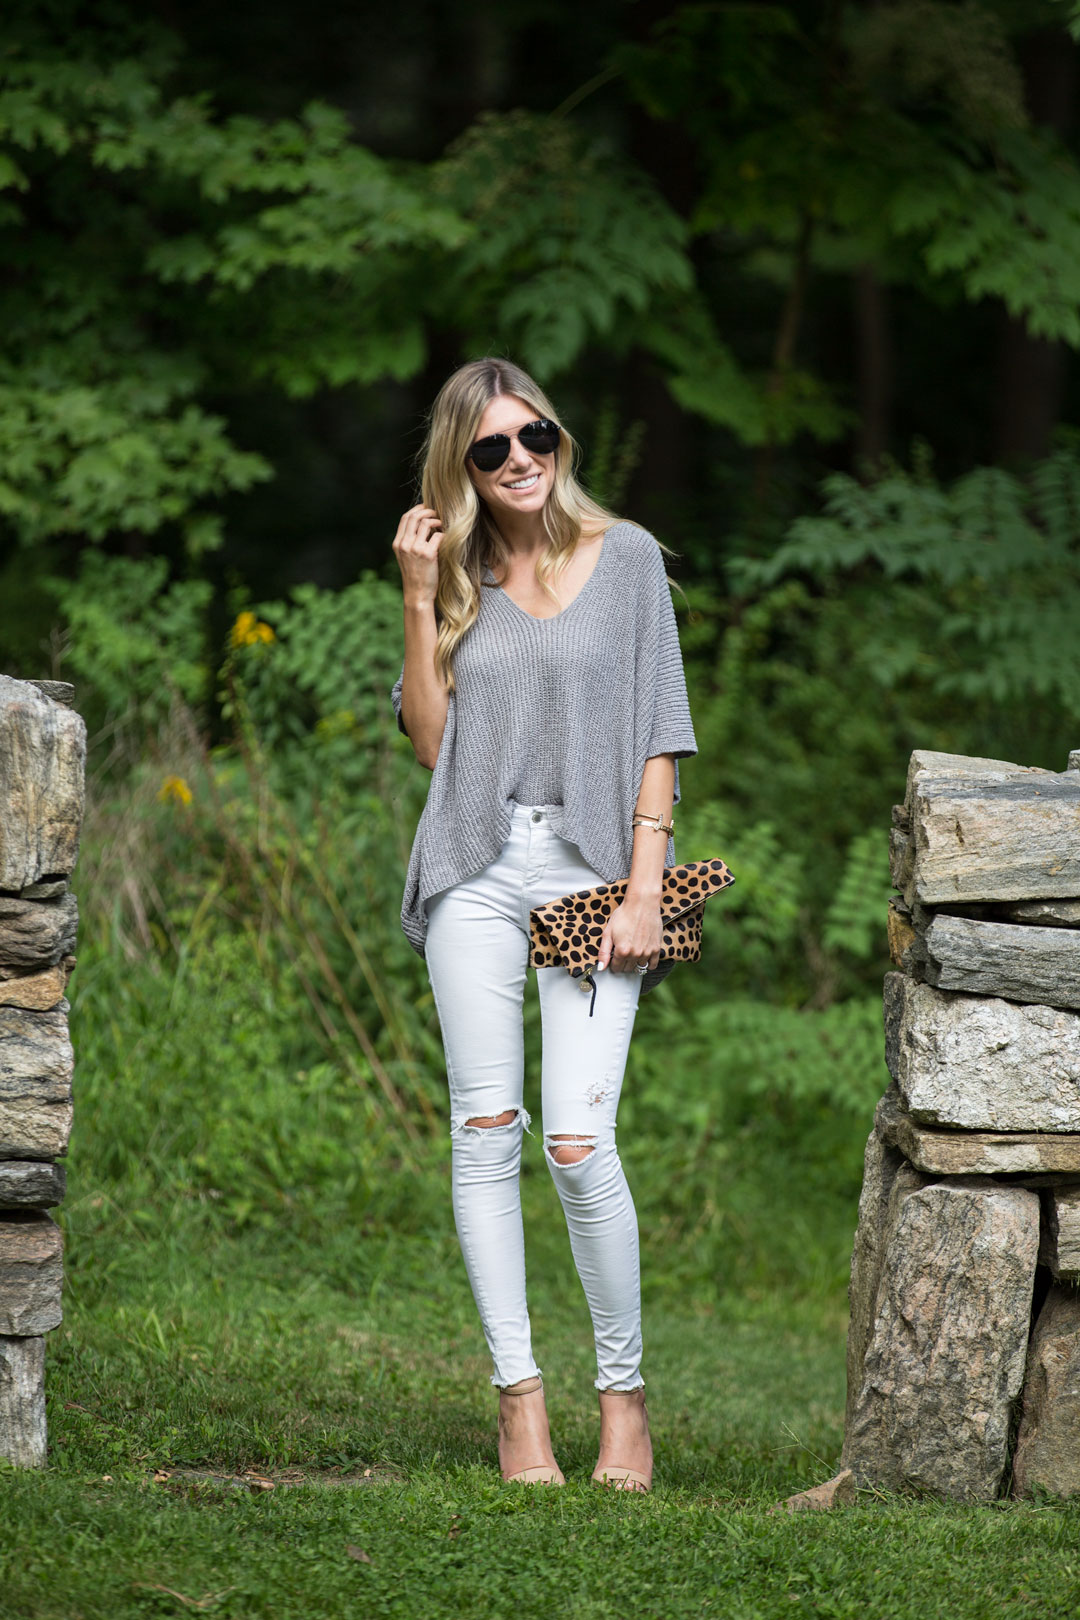 neutral and leopard outfit perfect for dinner